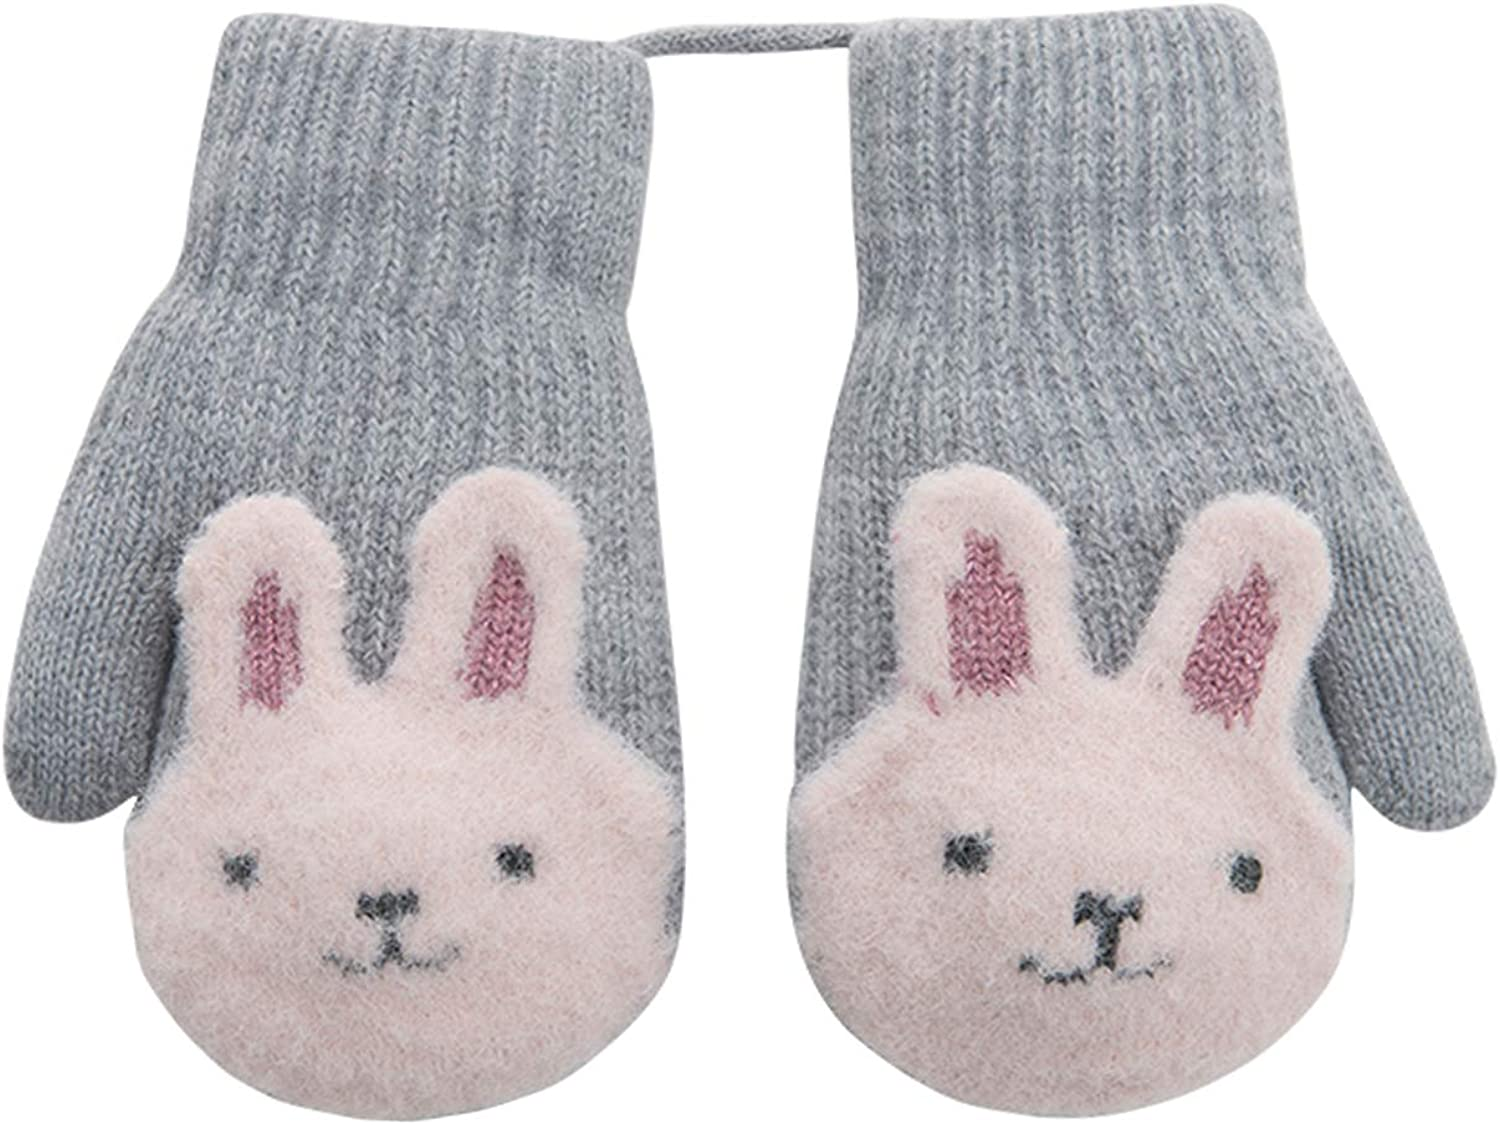 Details about  /Thick Warm Winter Kids Mittens Cute Animal Design for Fashionable Girls